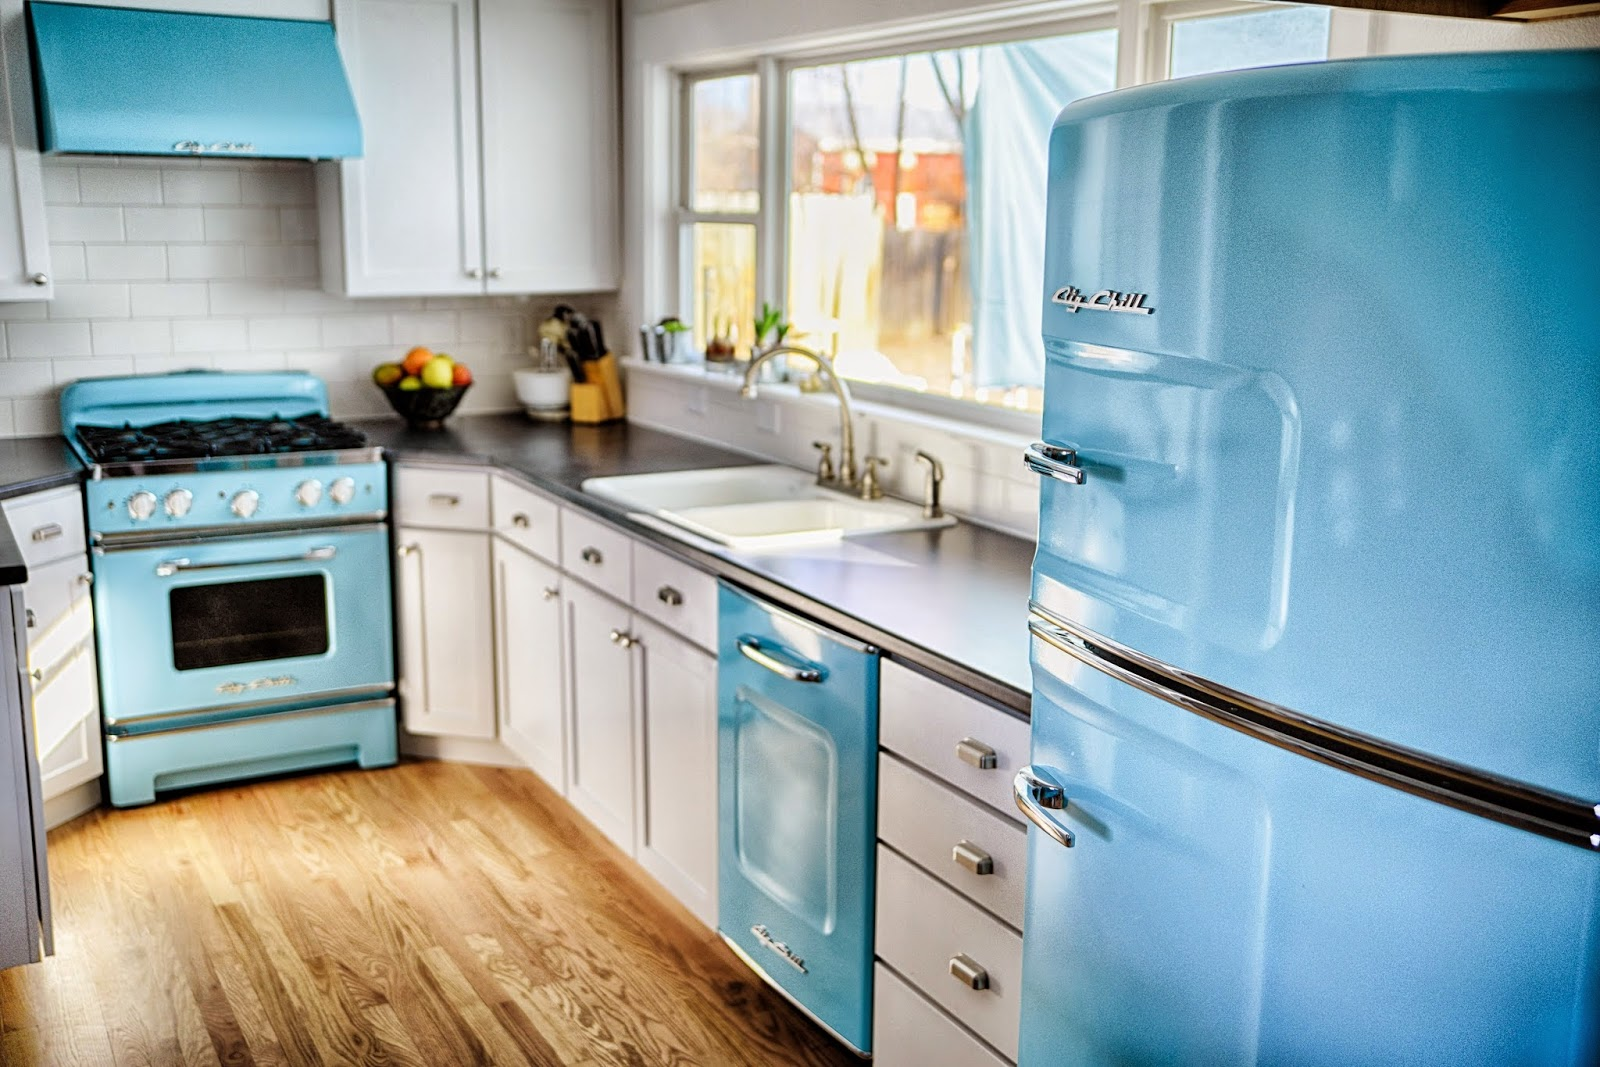 Back to the Future with Retro Appliances - Informative Kitchen ...